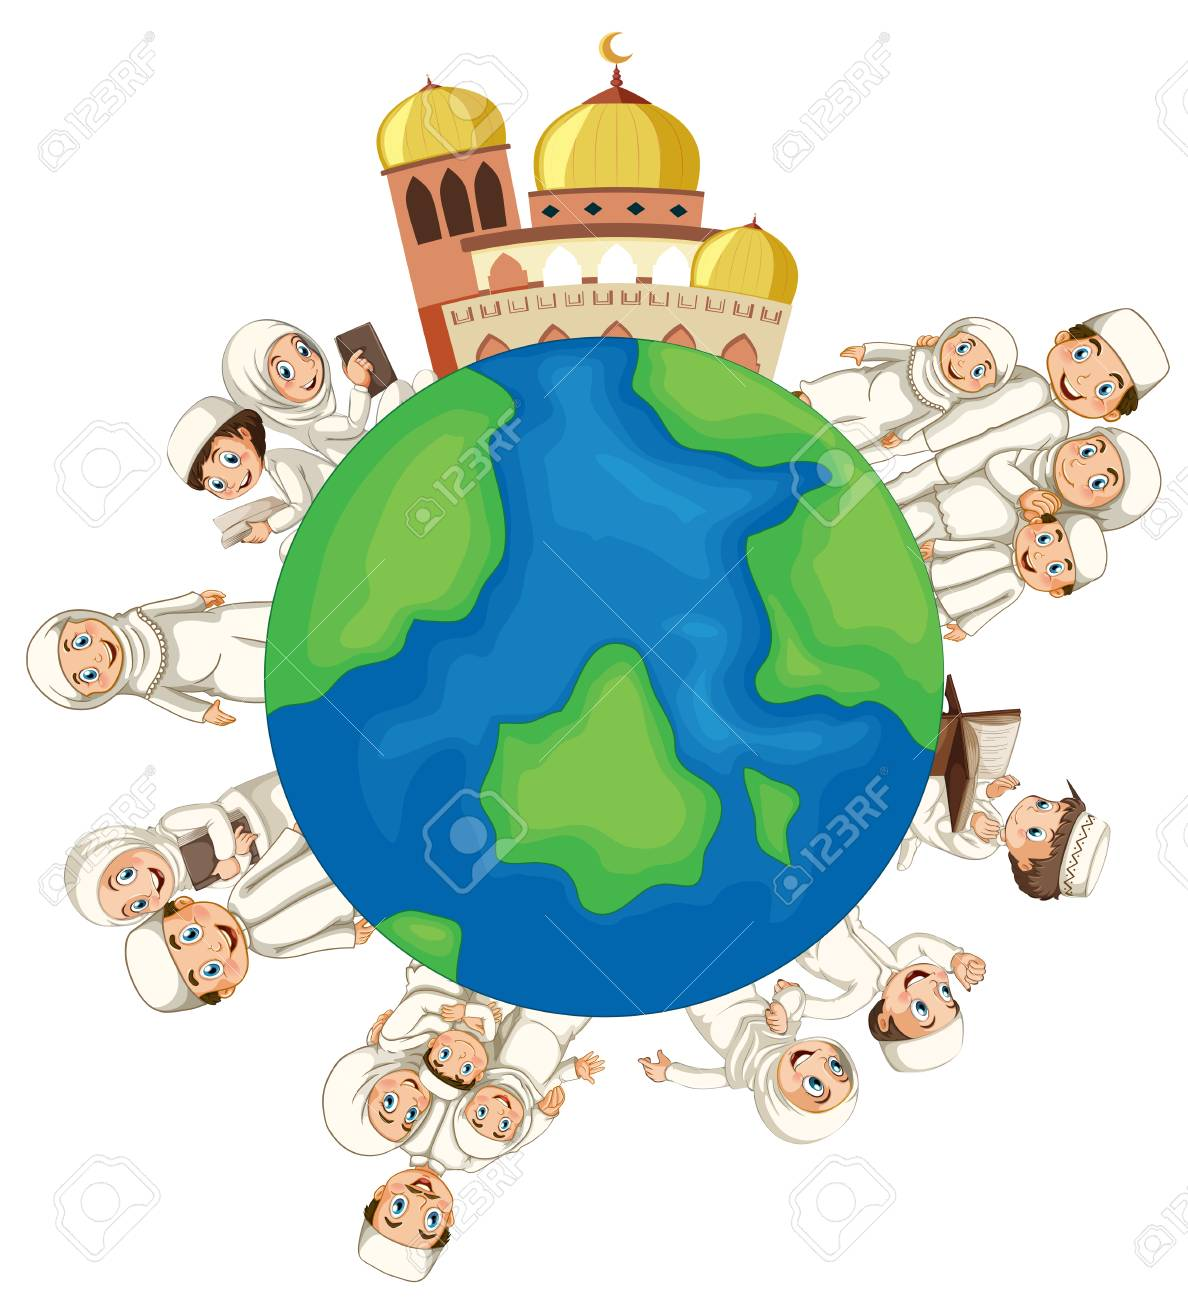 A Muslim People On The Globe Illustration Royalty Free Cliparts ...